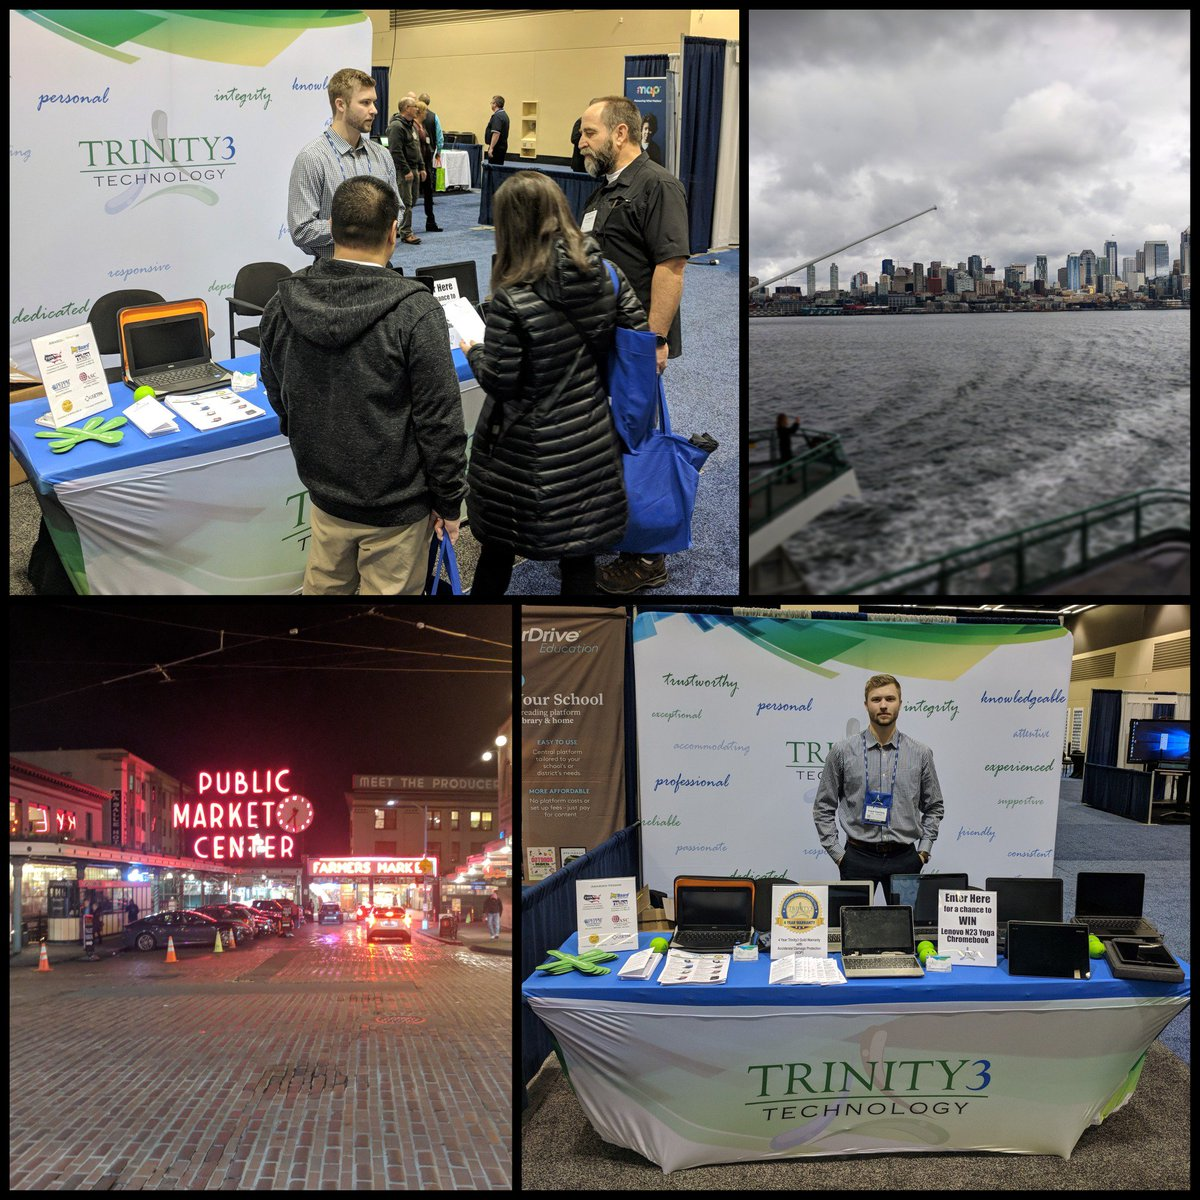 It's safe to say the team is having a blast at #NCCE18! Don't forget to see Blake at #Trintiy3 booth #330 and enter to win a #Lenovo N23 Yoga #Chromebook! @NCCE_EdTech #FridayFeeling https://t.co/JH8Y5yWDRs